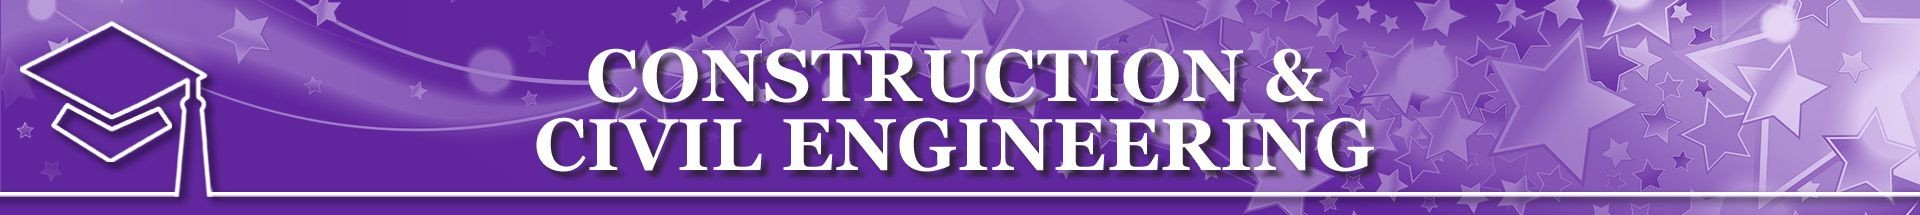 Construction & Civil Engineering